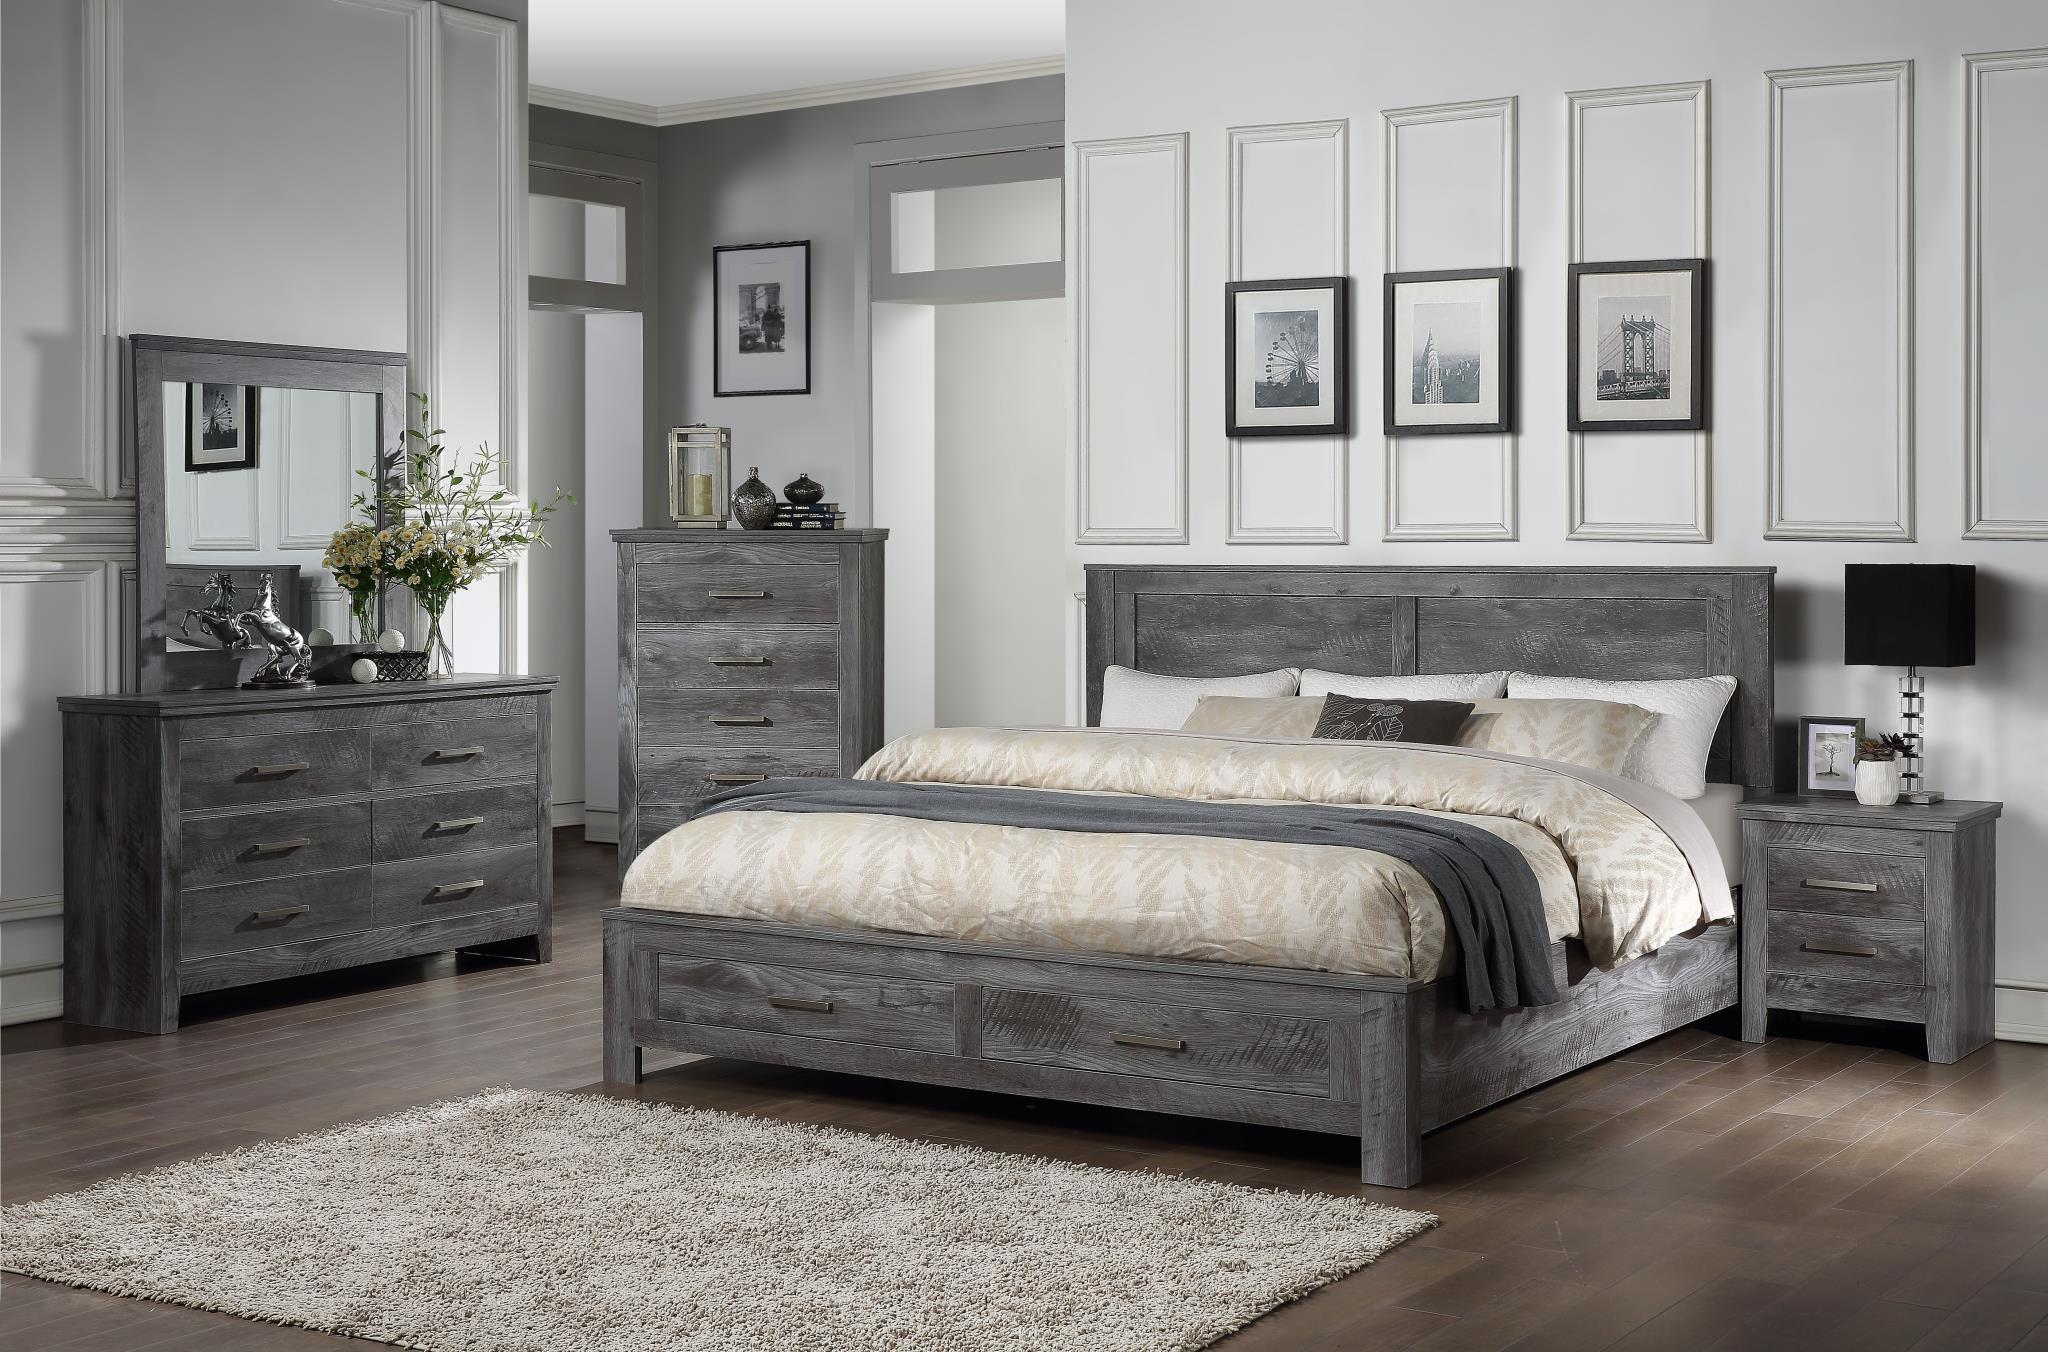 Vidalia Storage Rustic Gray Oak Bedroom Set